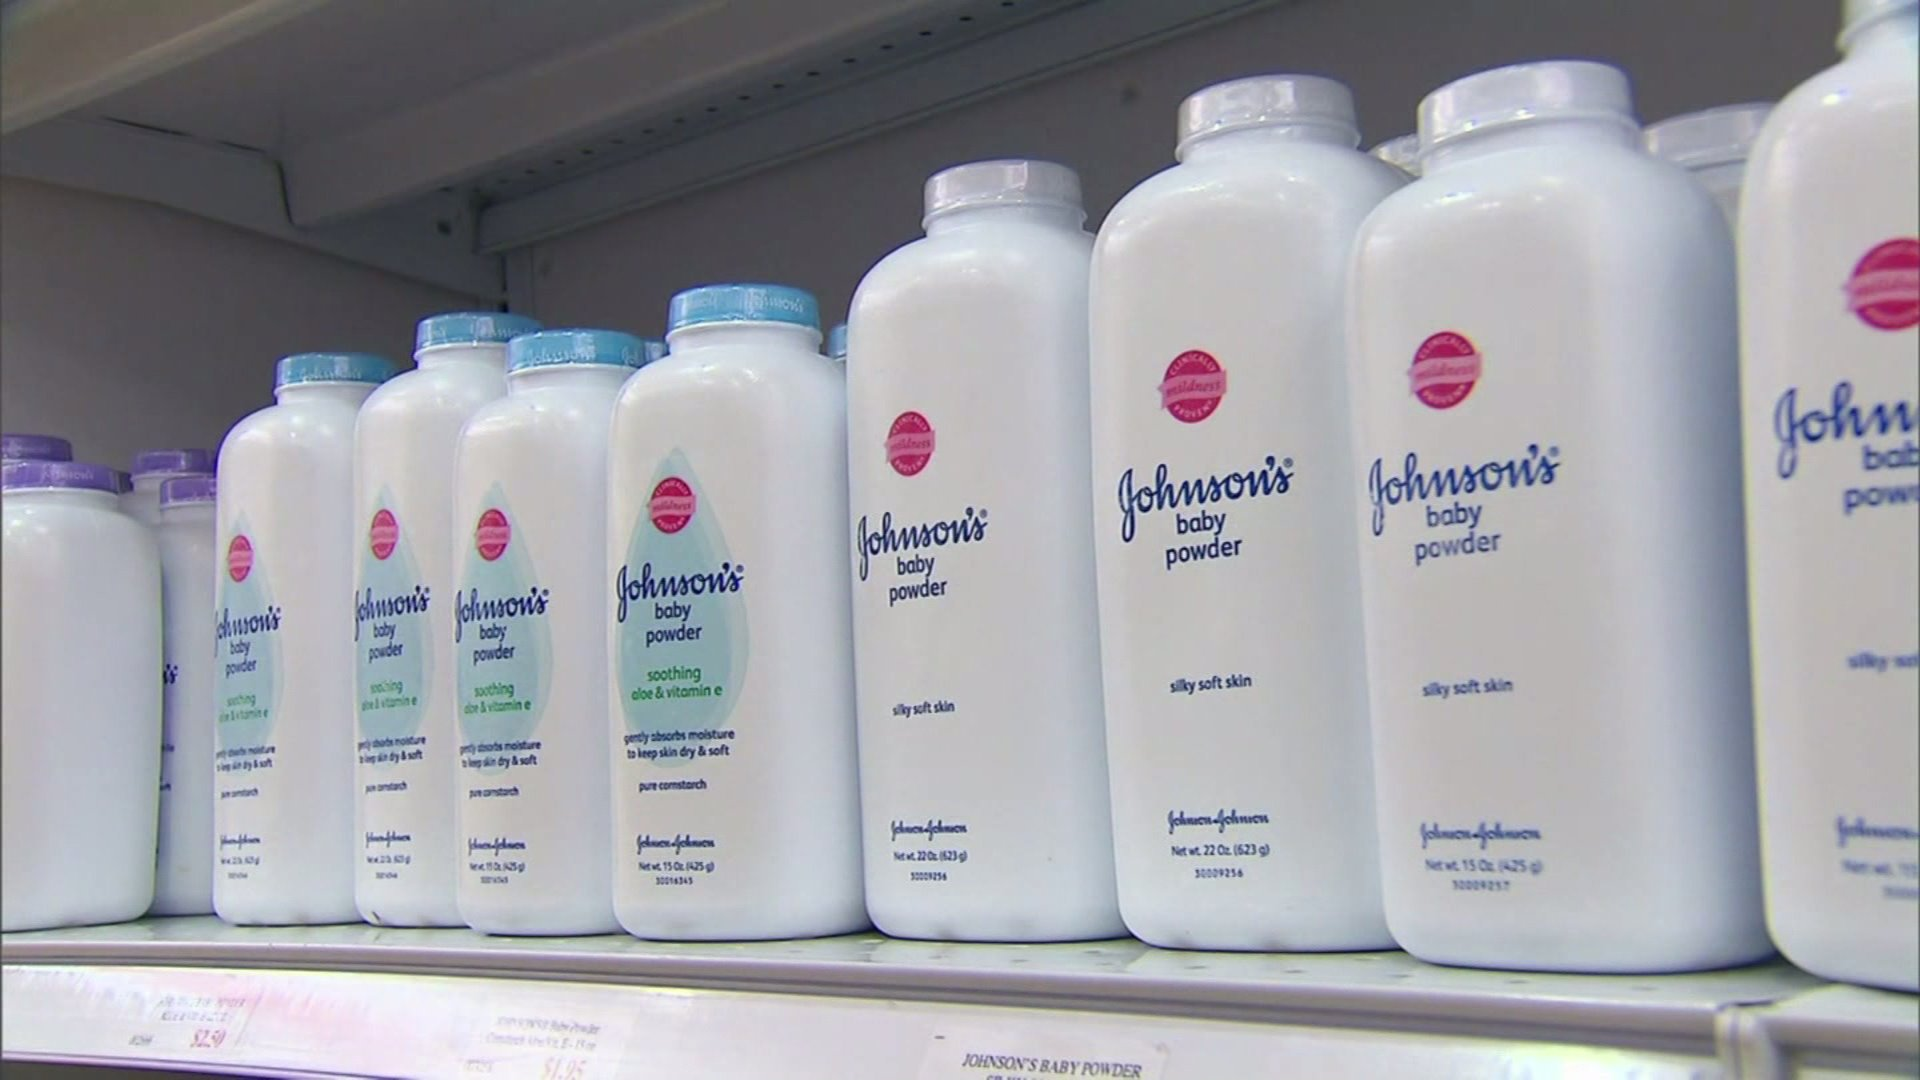 A St. Louis jury awarded $4.62 billion to 22 women who sued pharmaceutical giant Johnson & Johnson. (Credit: CNN)